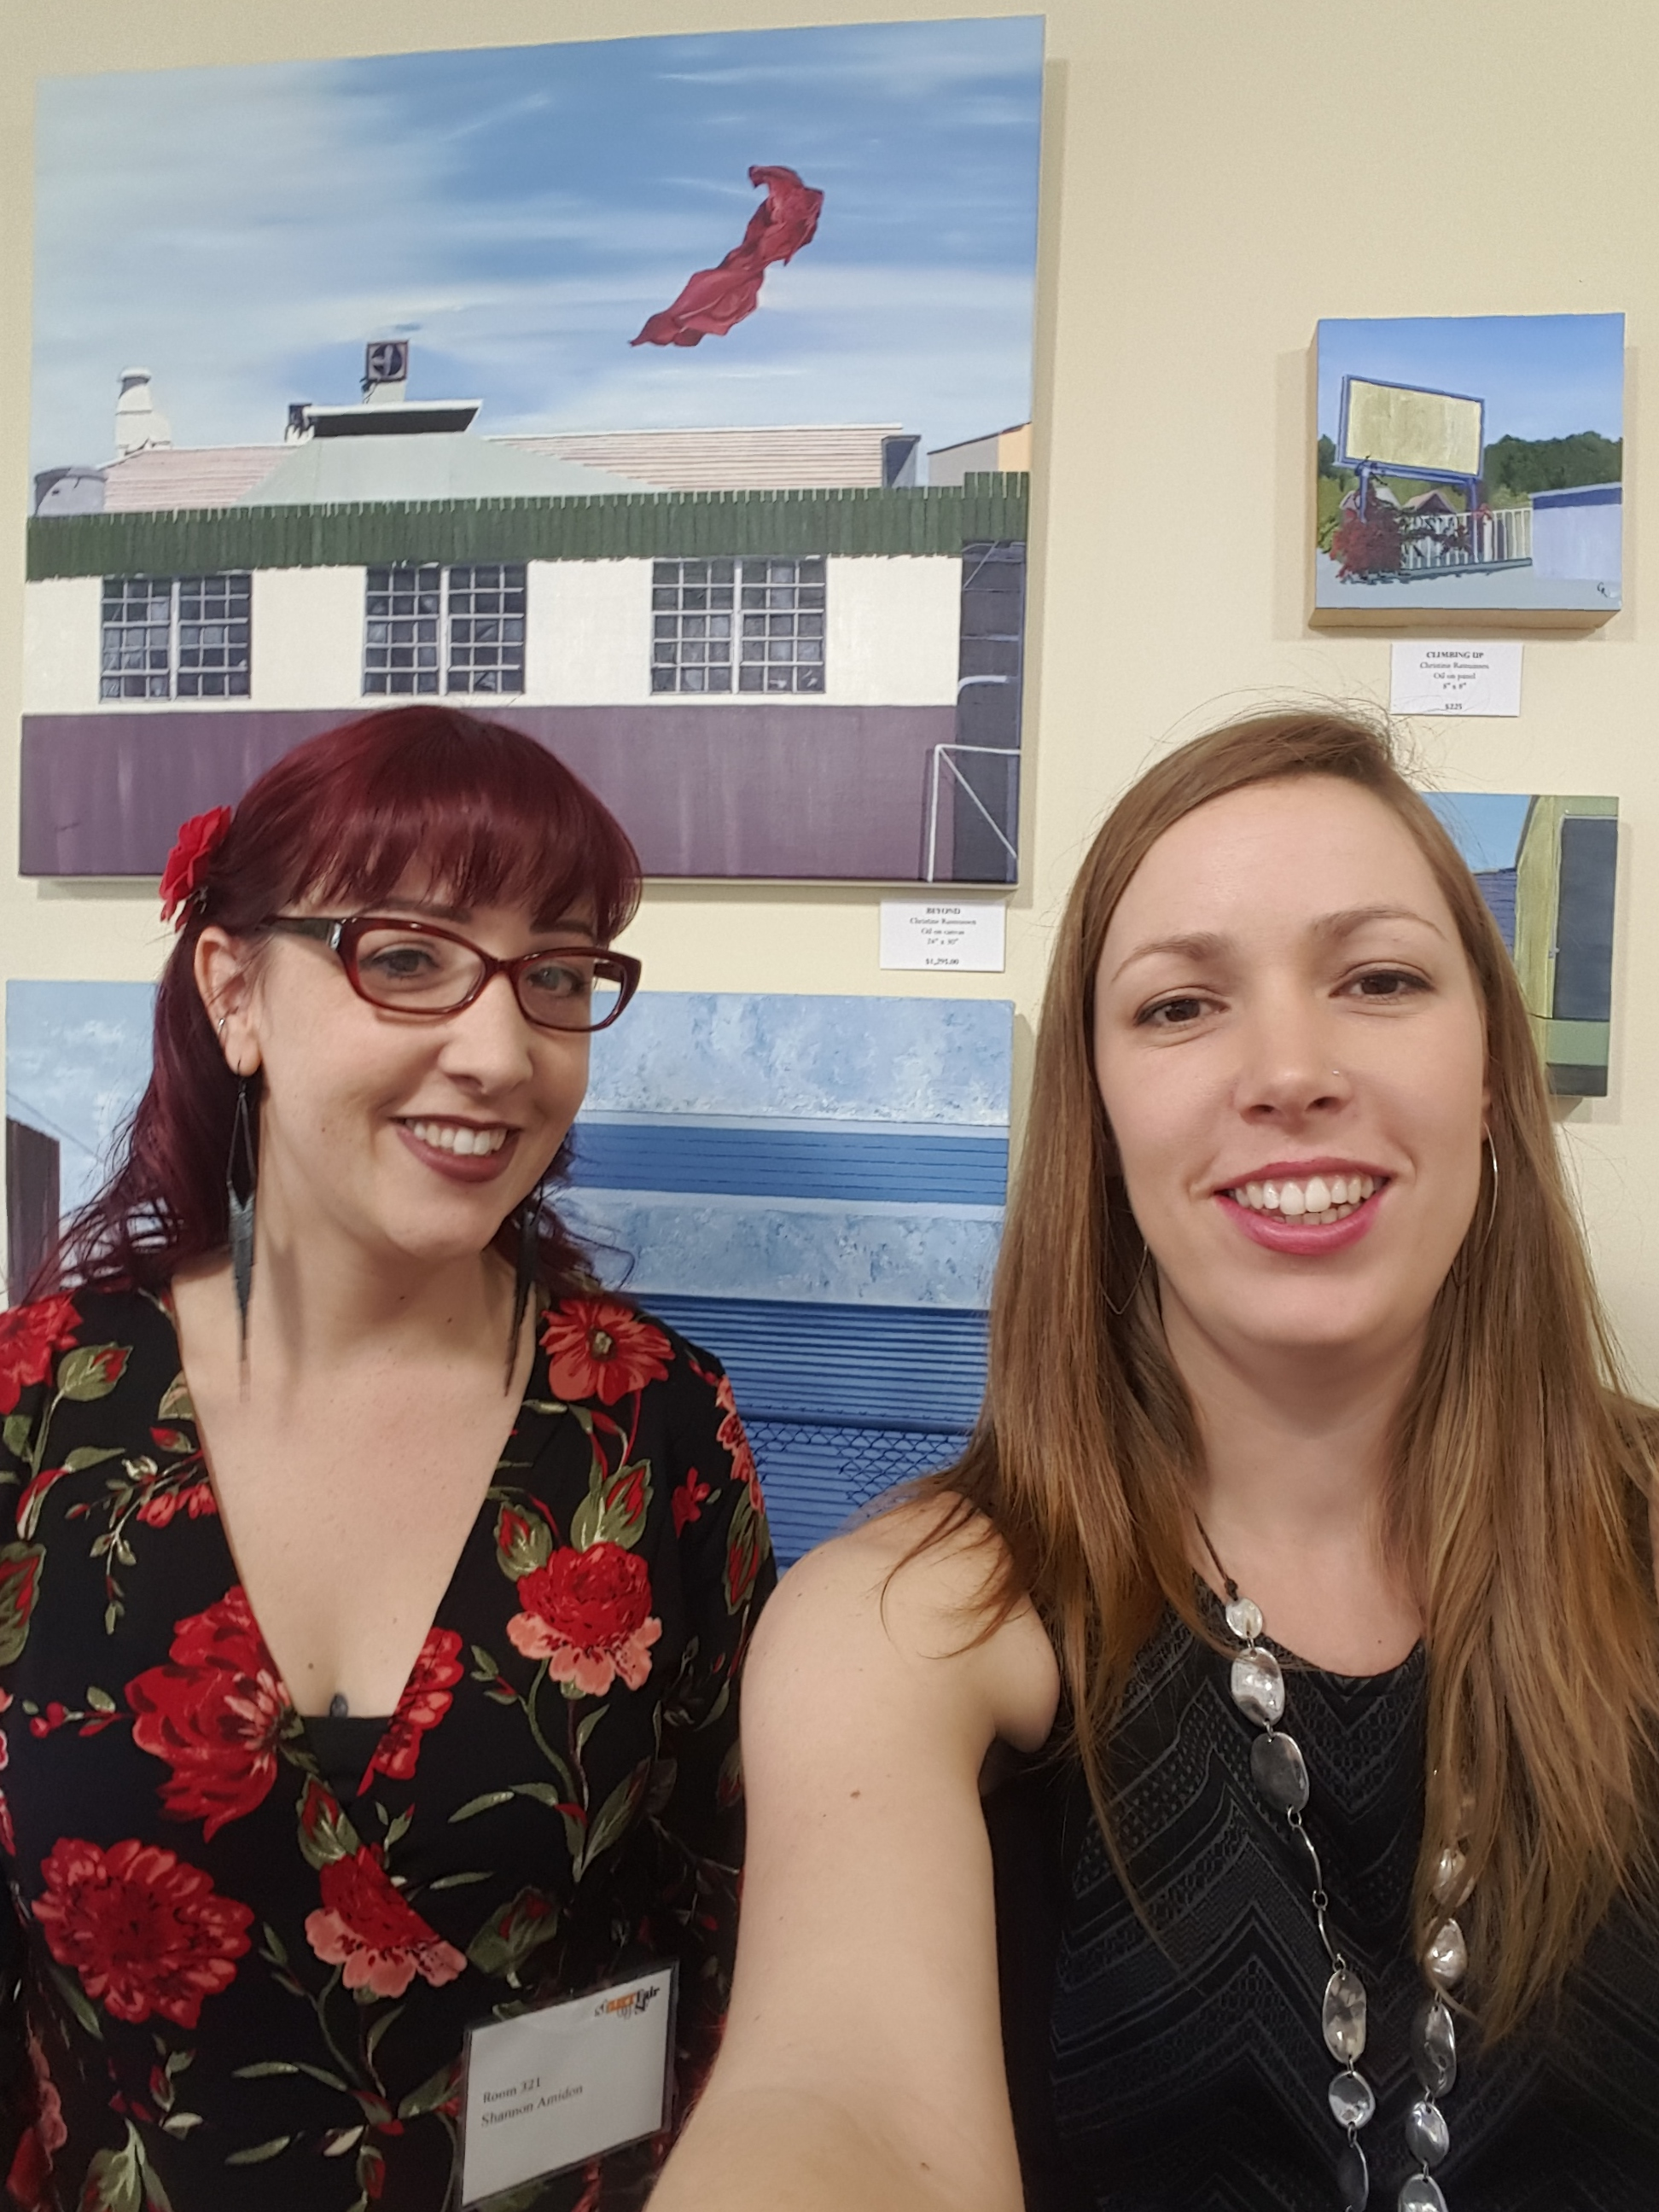 Shannon Amidon & Christine Rasmussen at StARTup Art Fair, San Francisco, 2017.